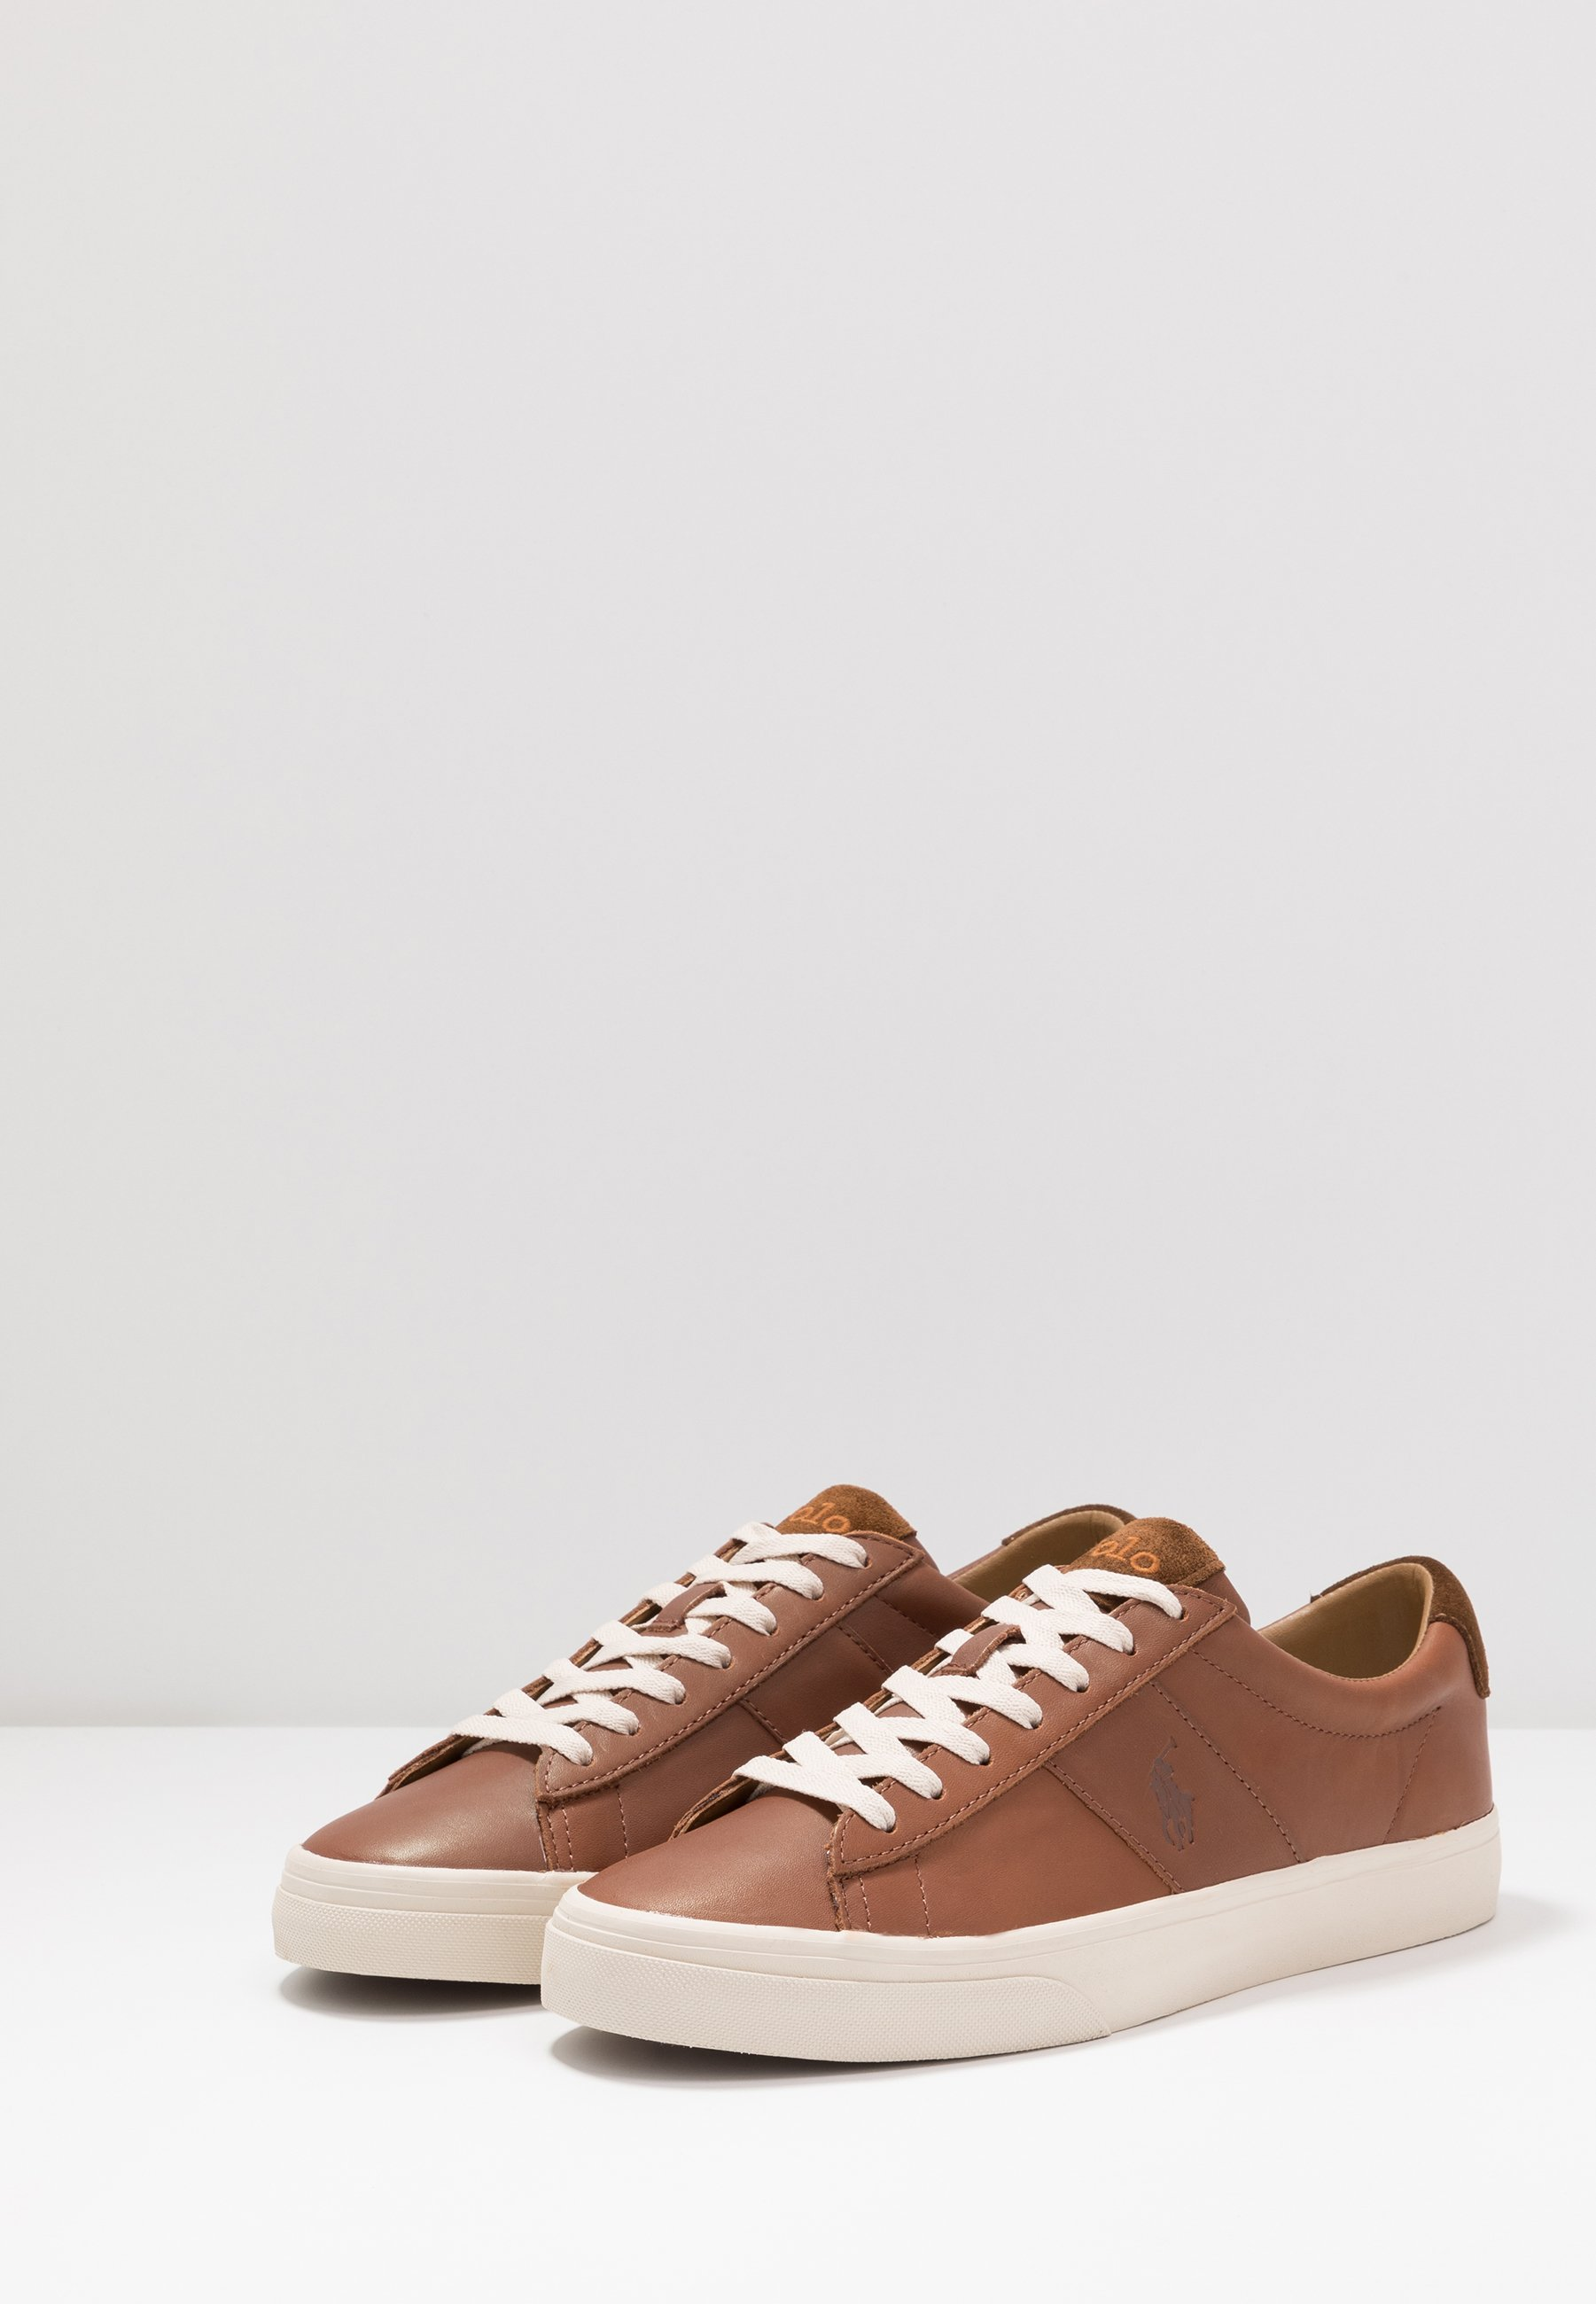 Polo Ralph Lauren SAYER - Sneakers - tan